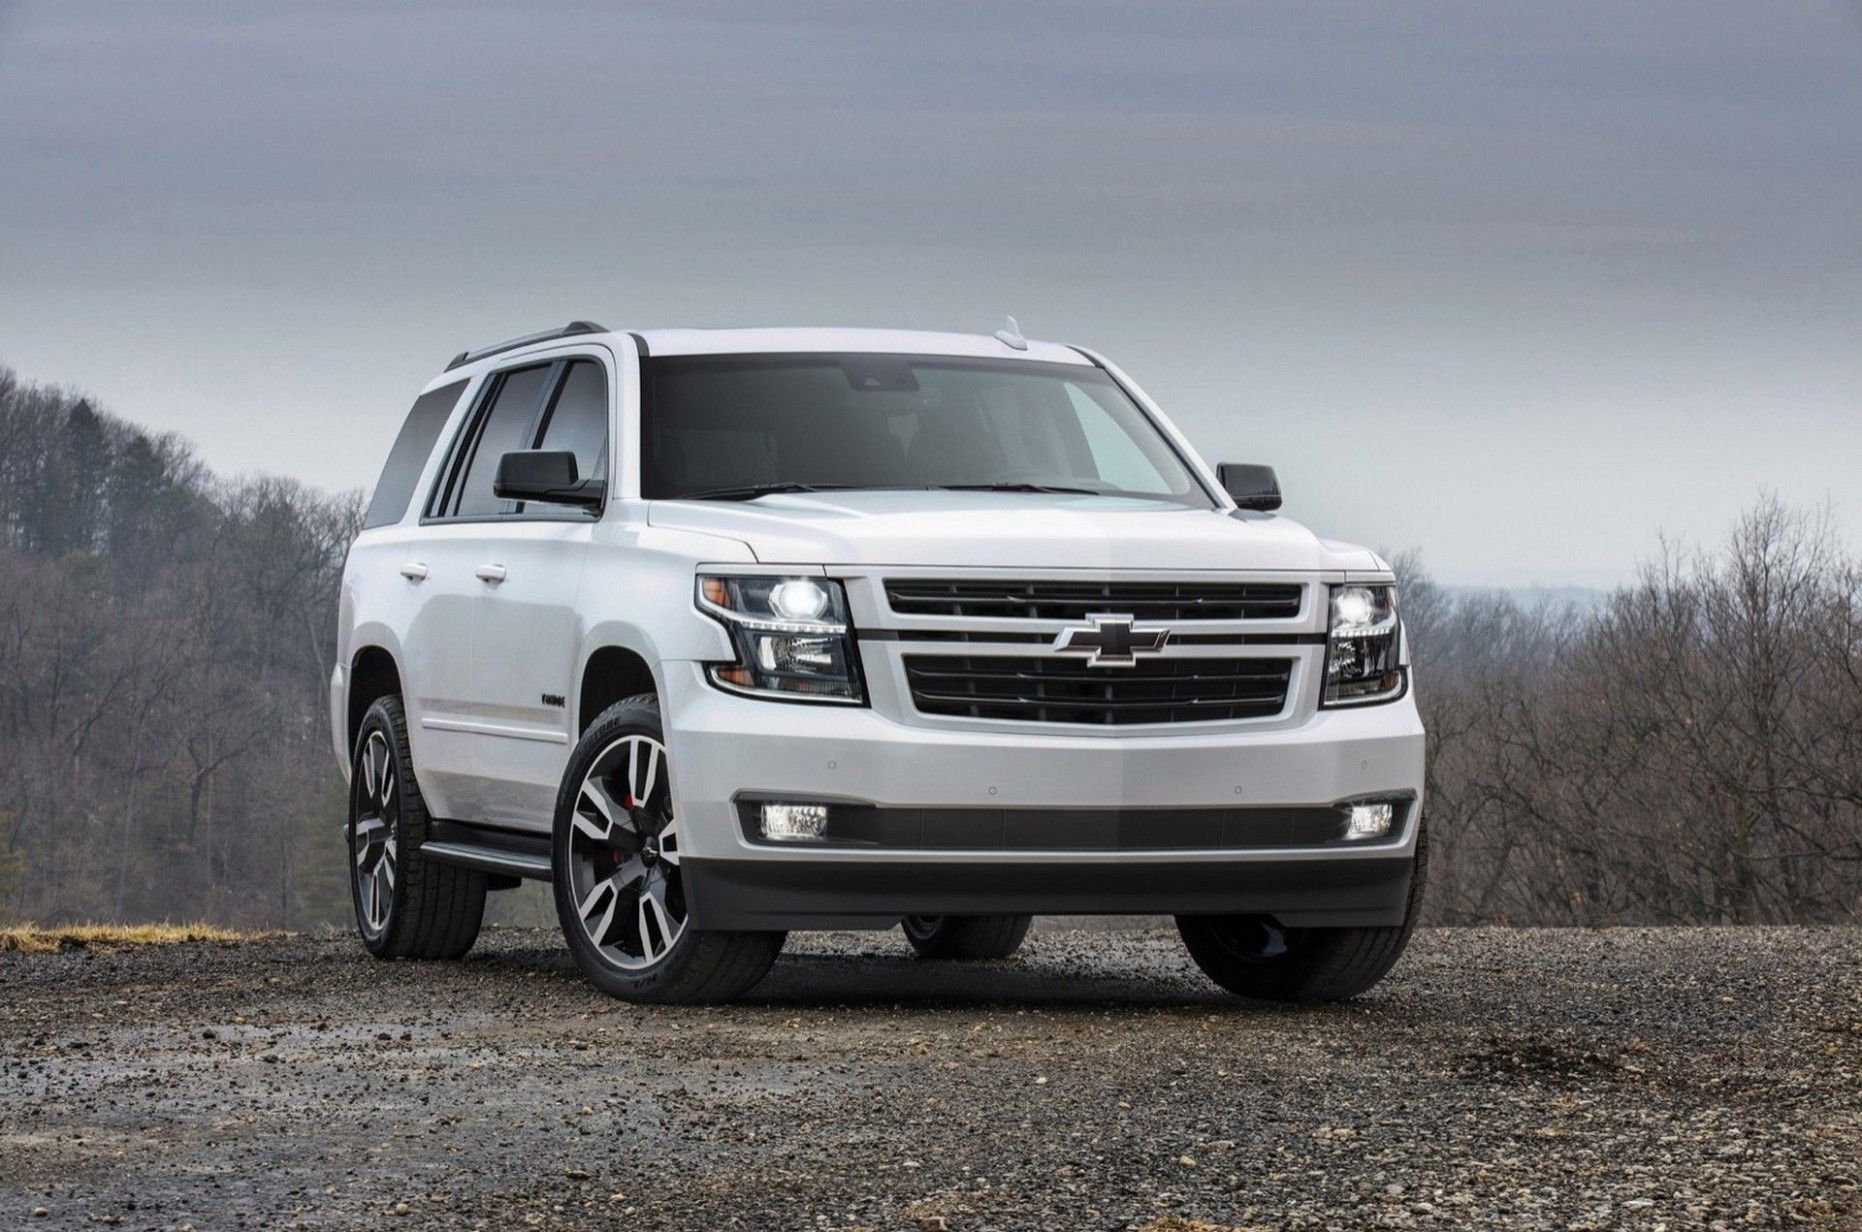 2020 Chevy Suburban Z71 Price Design And Review In 2020